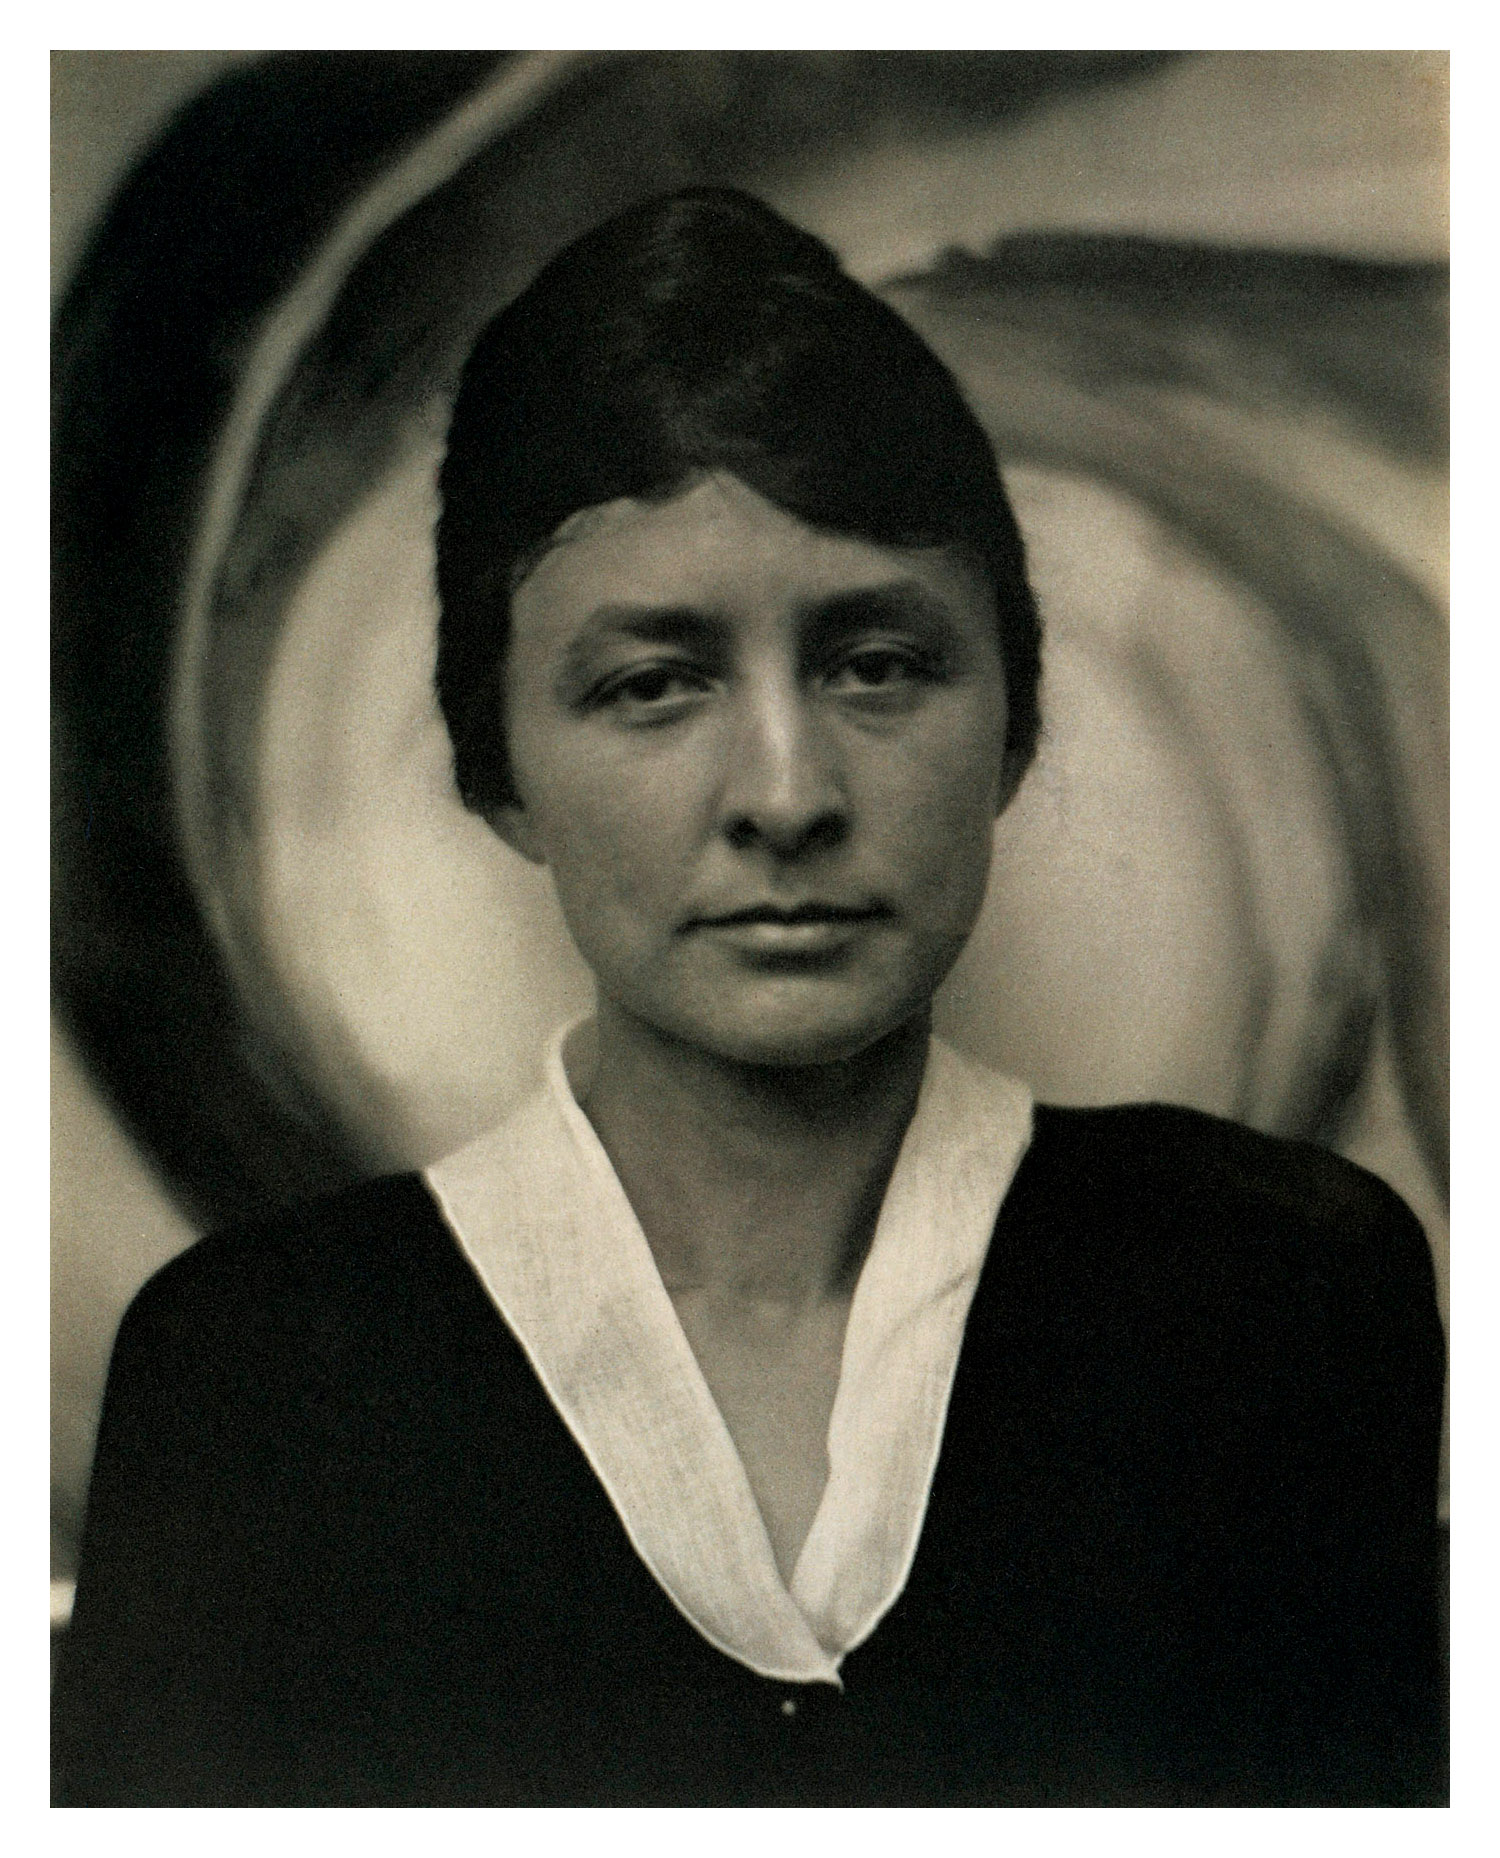 georgia o keeffe Georgia o'keeffe was a 20th century american painter and pioneer of american modernism best known for her canvases depicting flowers, skyscrapers, animal skulls and southeastern landscapes.